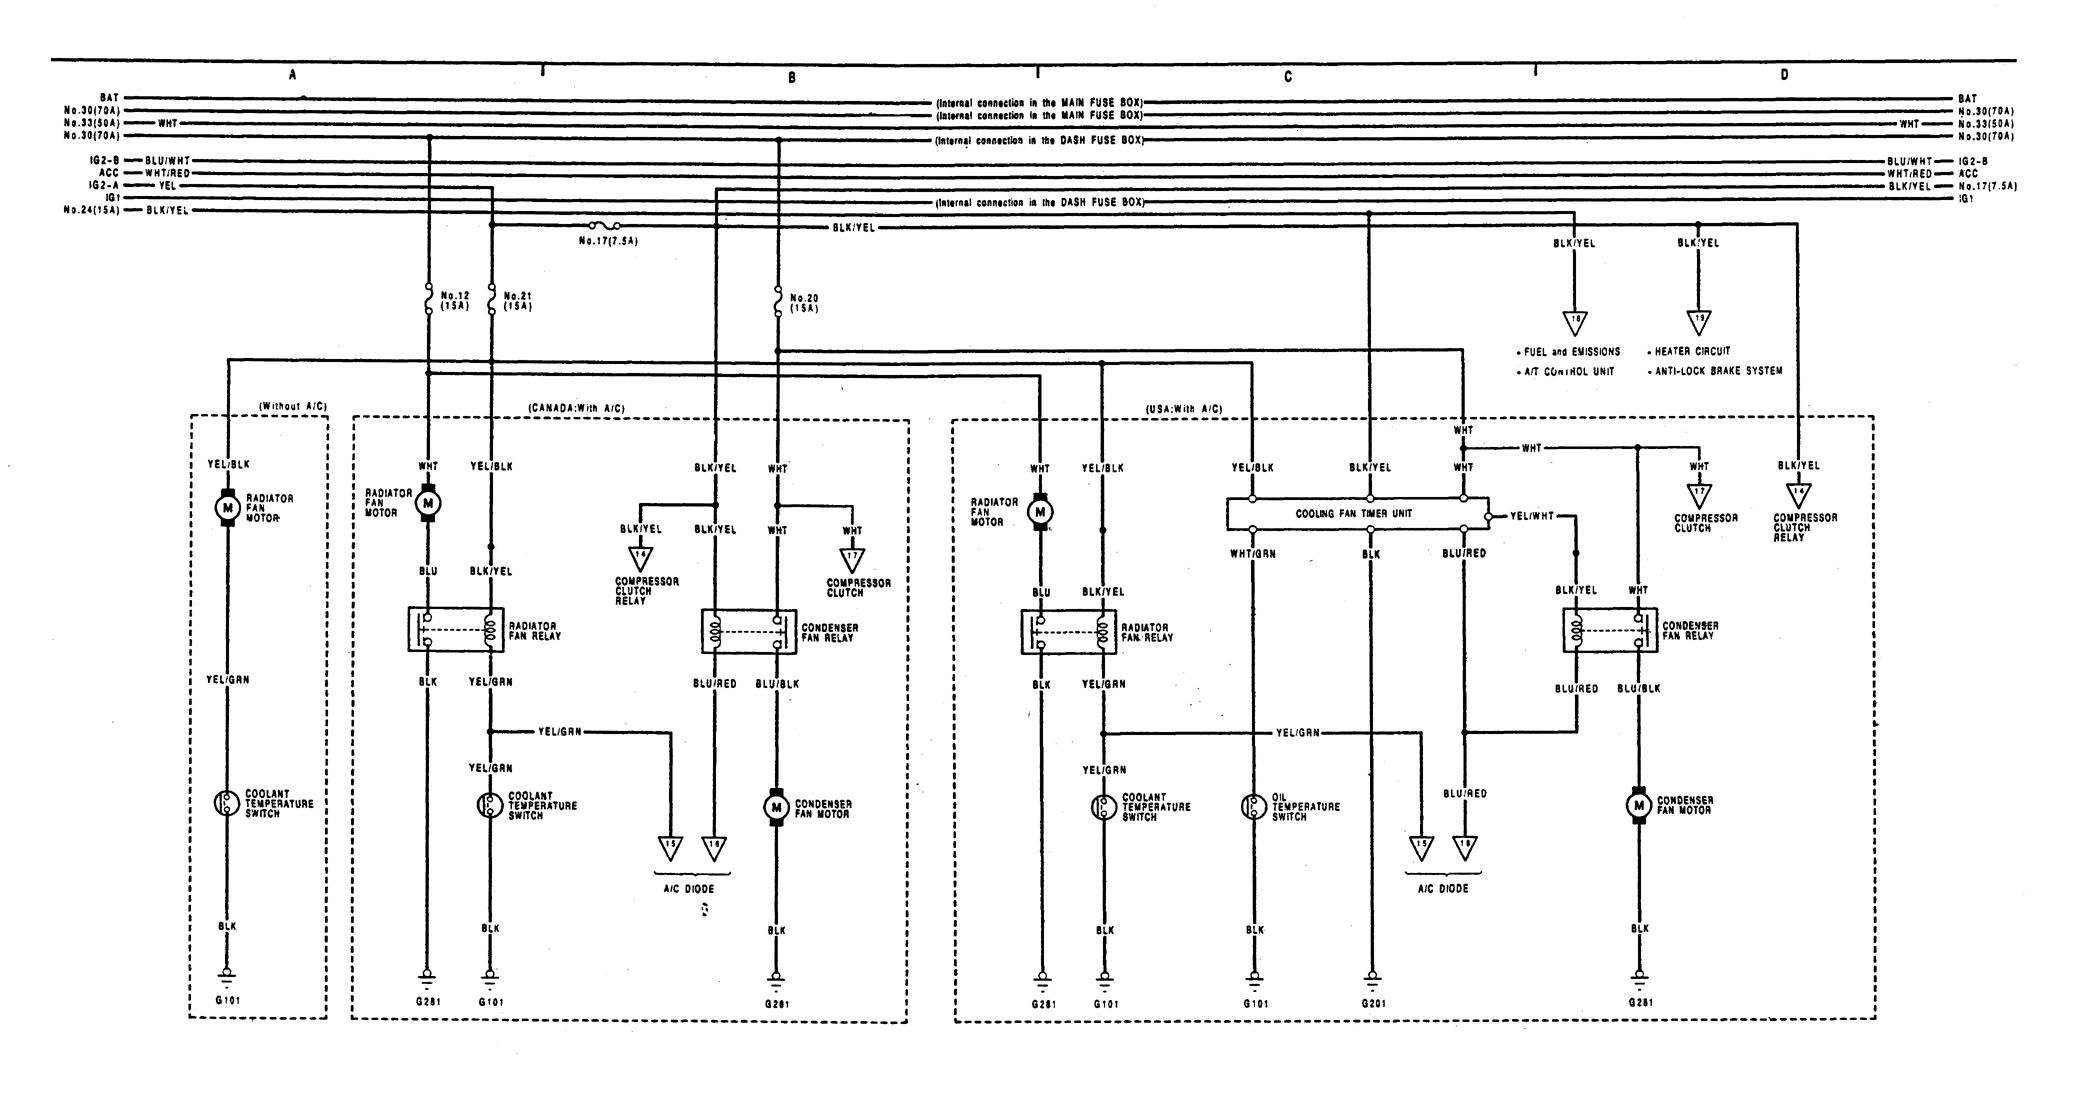 91 240sx fuse box wiring diagram acura integra  1991 1992  wiring diagrams cooling fans  acura integra  1991 1992  wiring